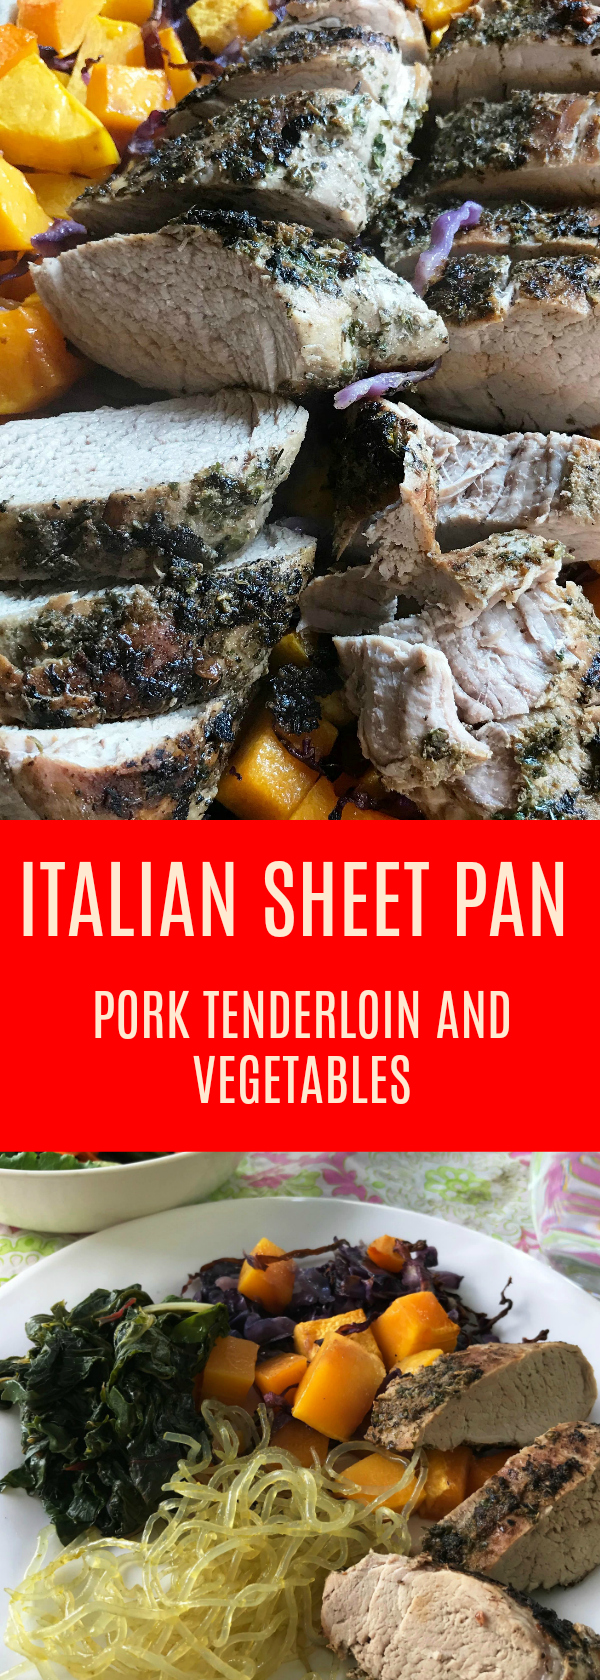 Italian Sheet Pan Pork Tenderloin and Vegetables